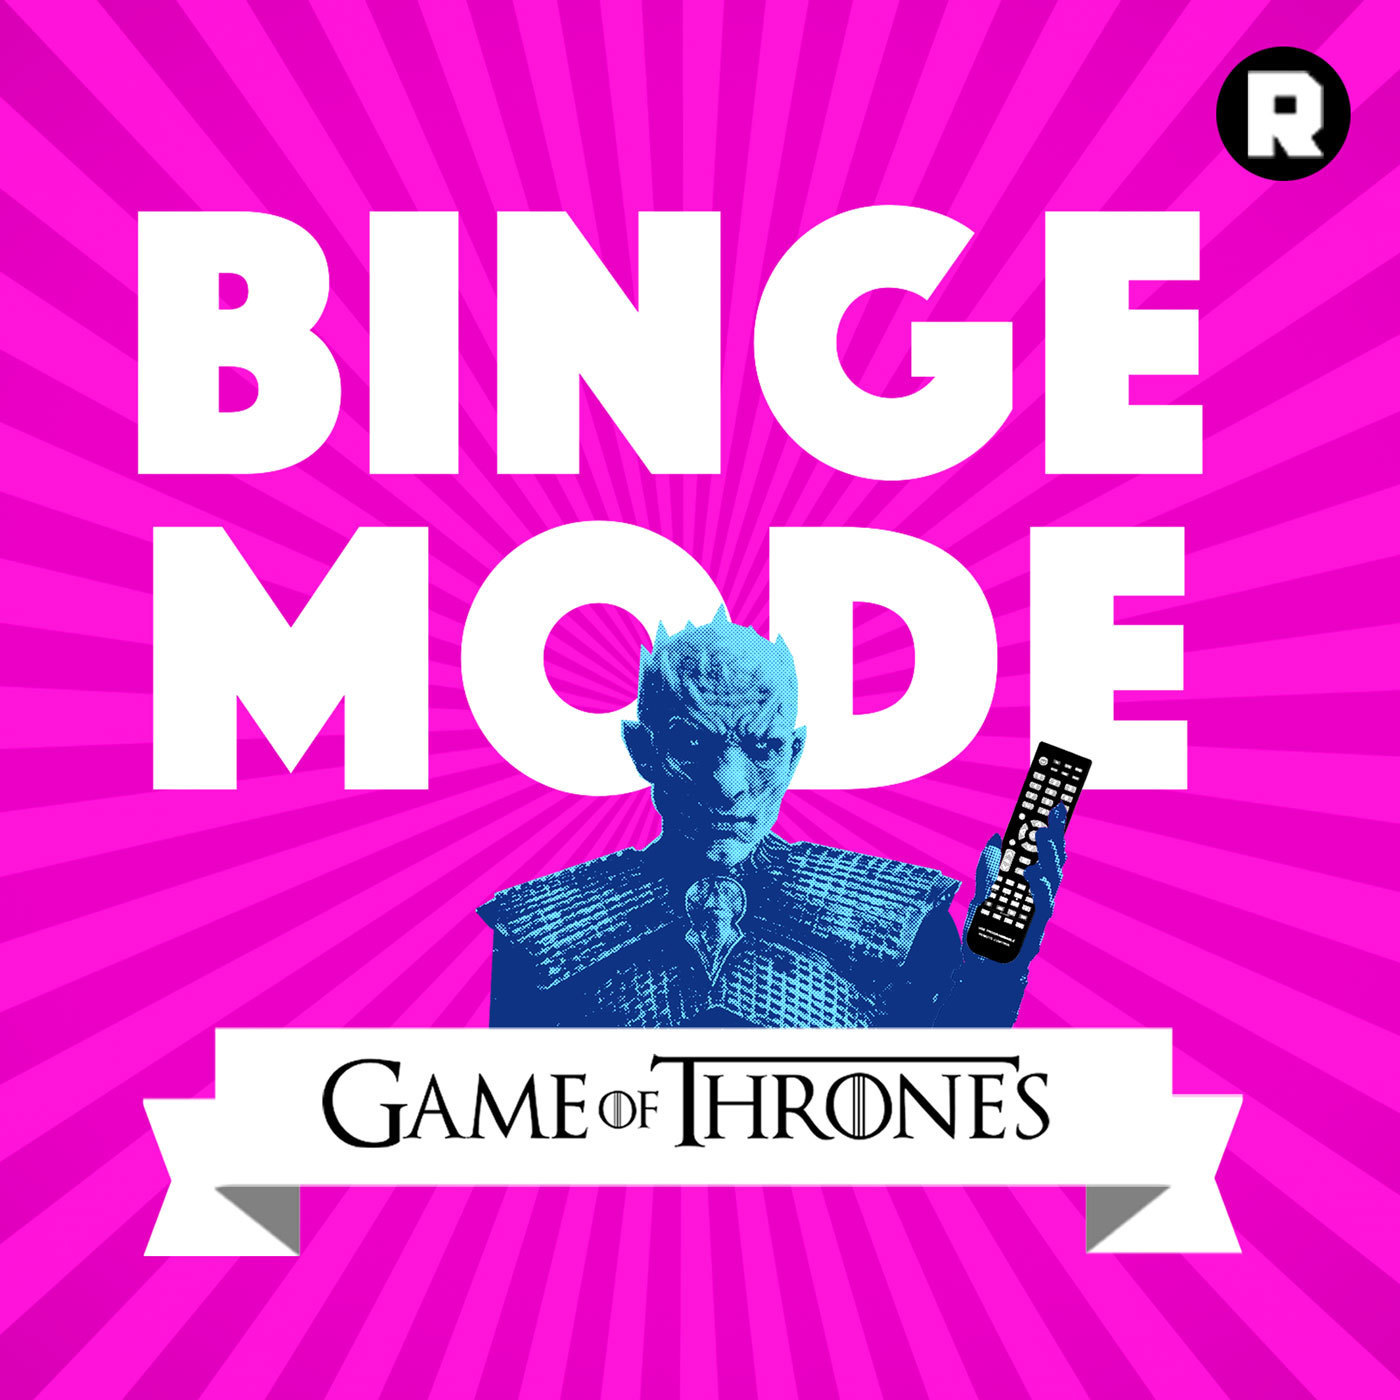 S2E4: Garden of Bones | Game of Thrones